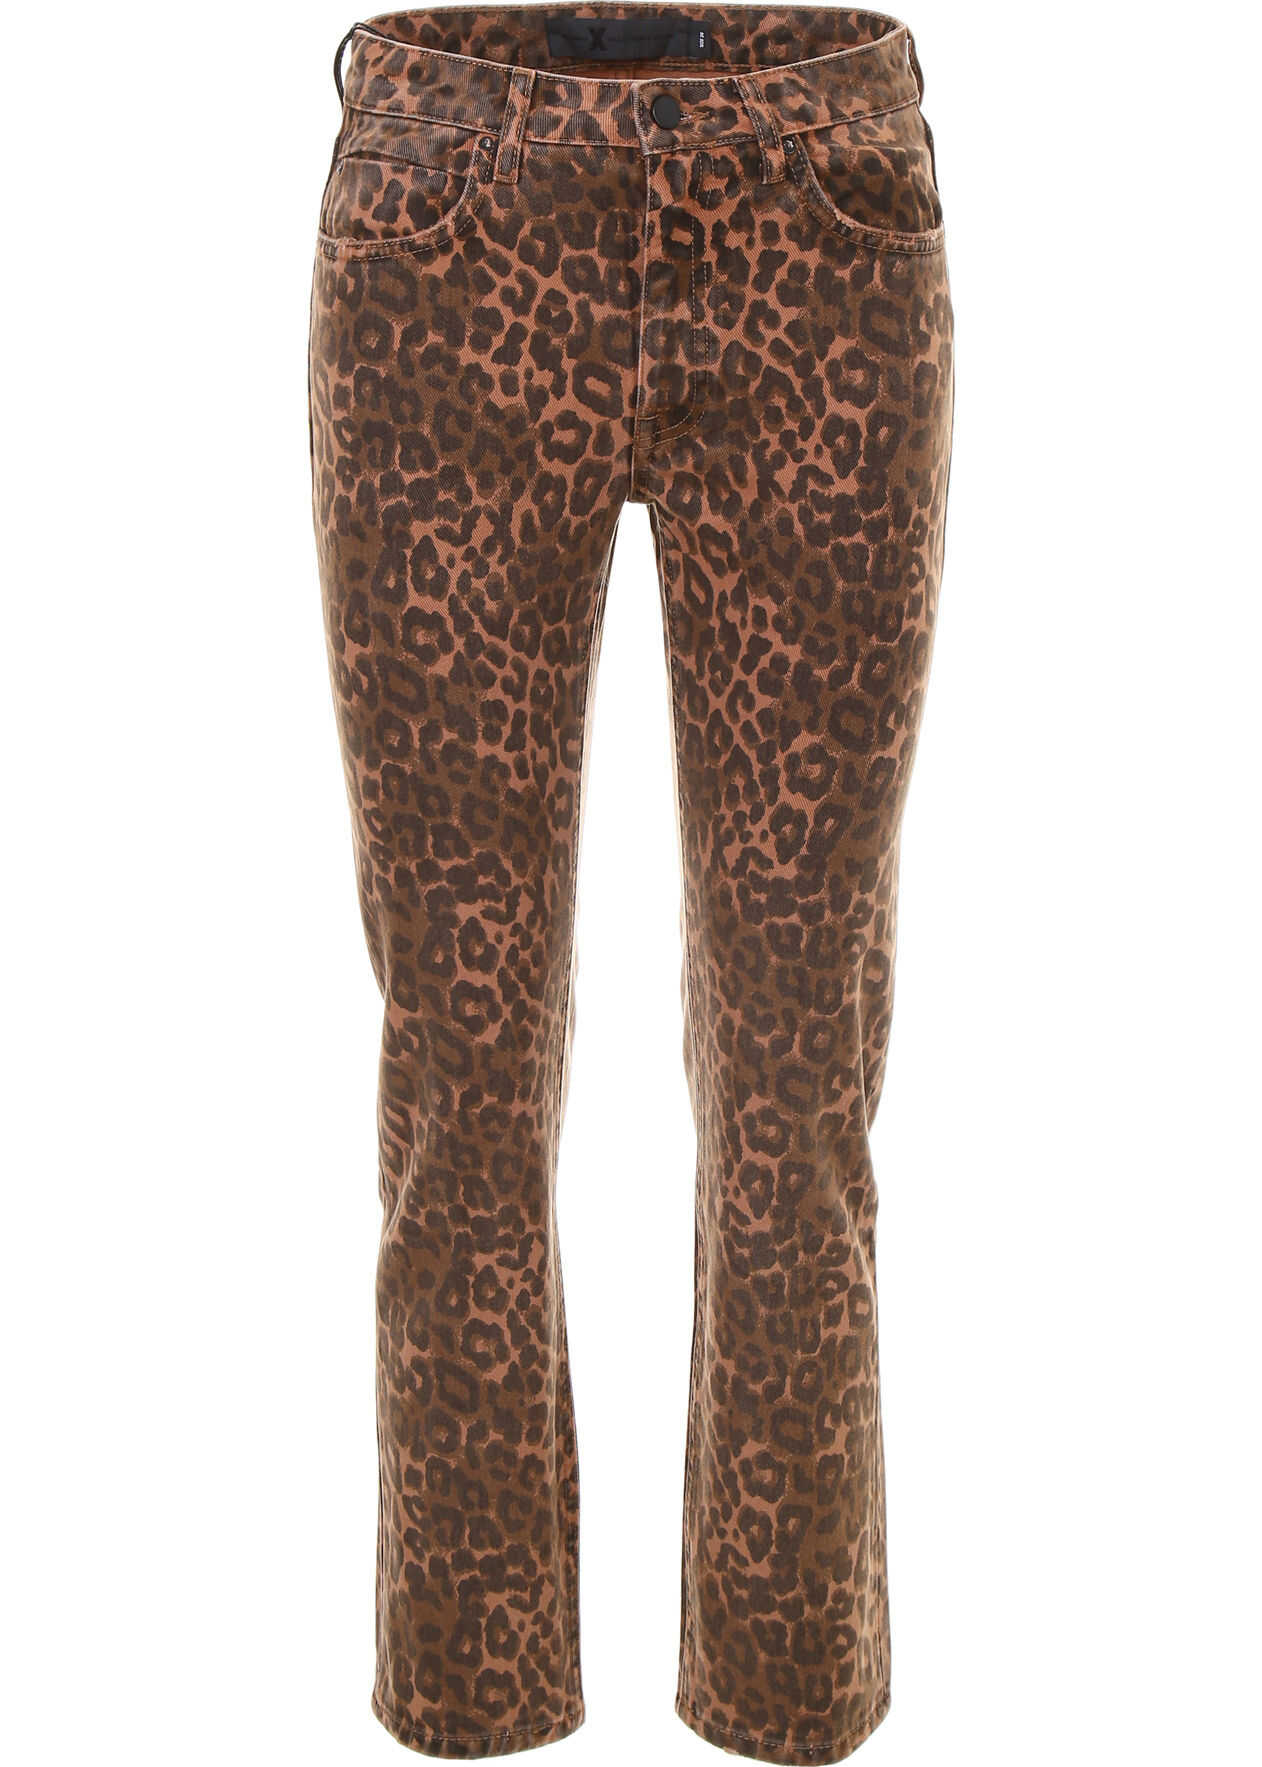 Leopard Printed Jeans